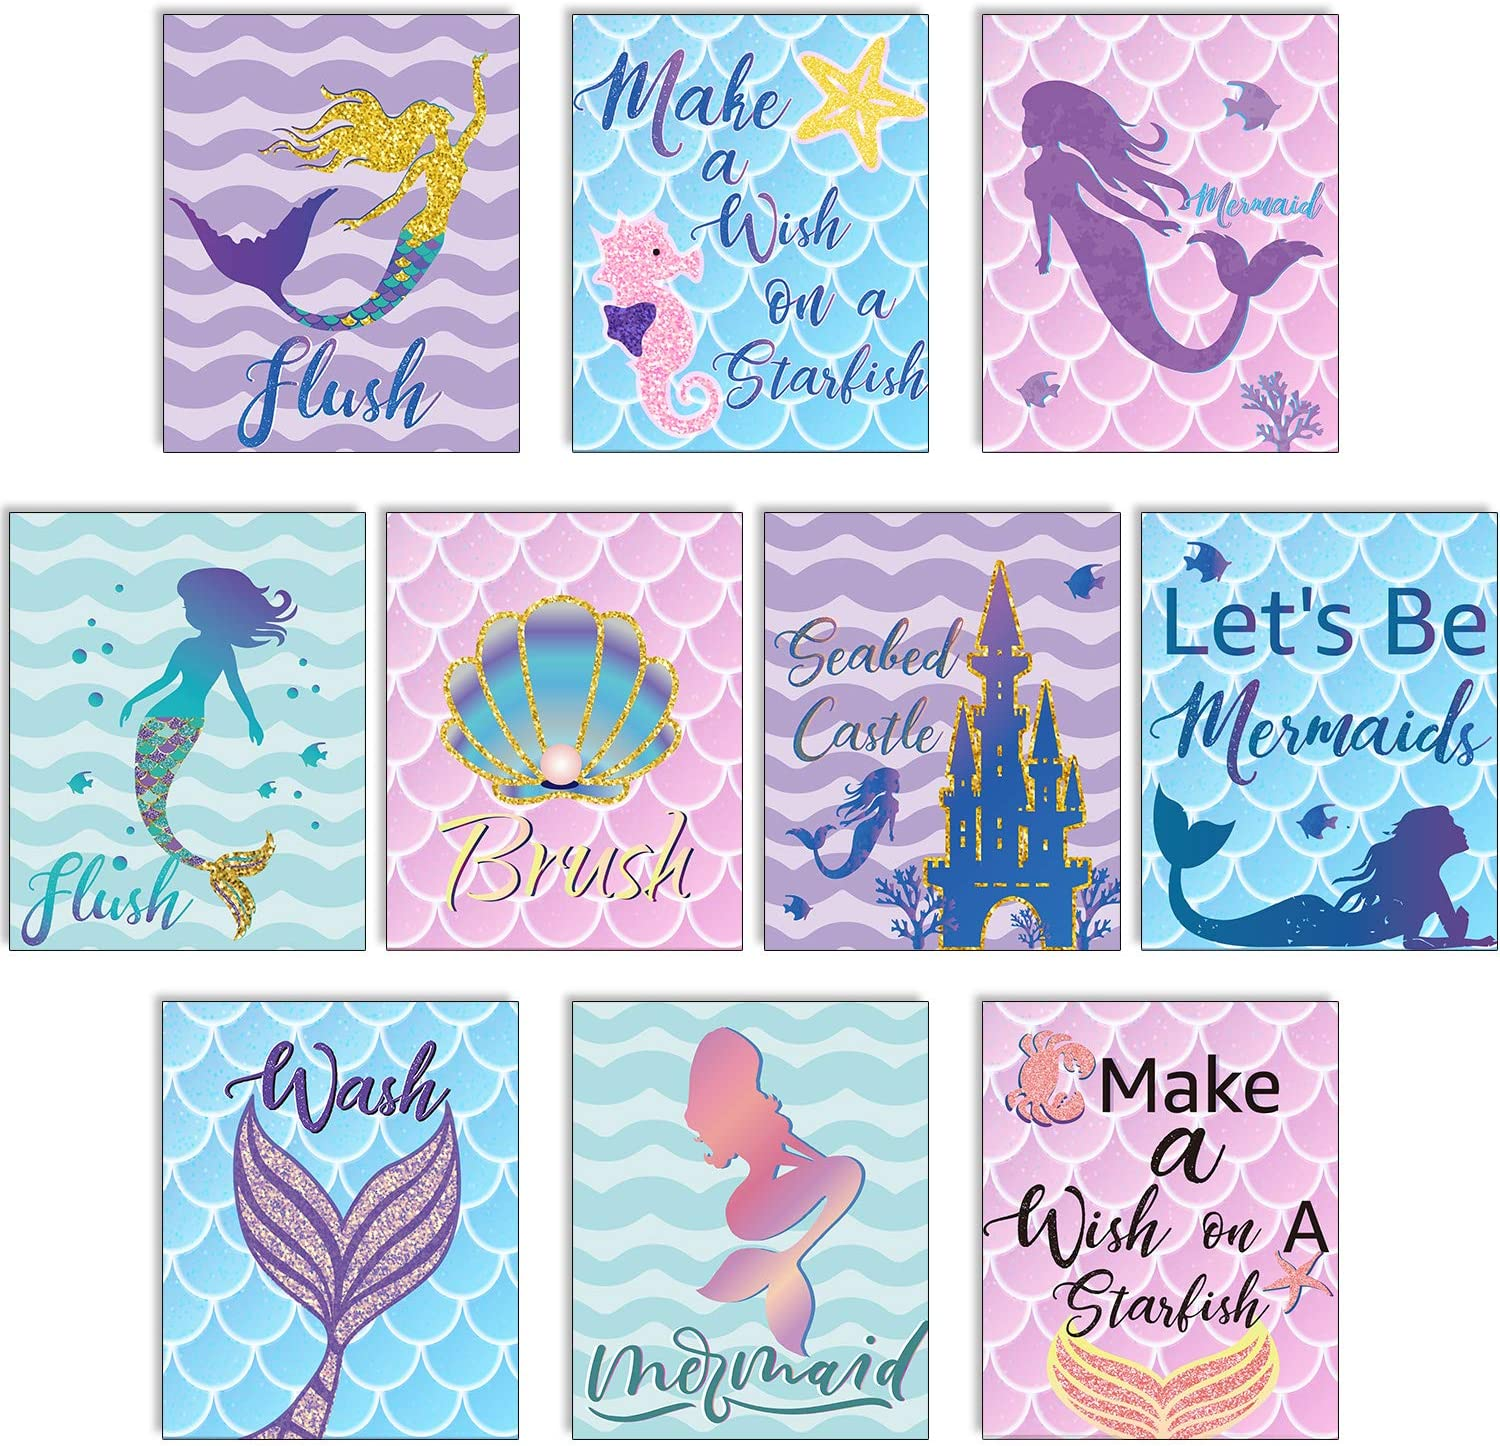 Blulu 10 Pieces Let's Be Mermaids Poster Ocean Mermaid Sign 12.4 x 10.2 Inch Unframed Art Print for Mermaid Party Girls Bedroom Bathroom Home Decor